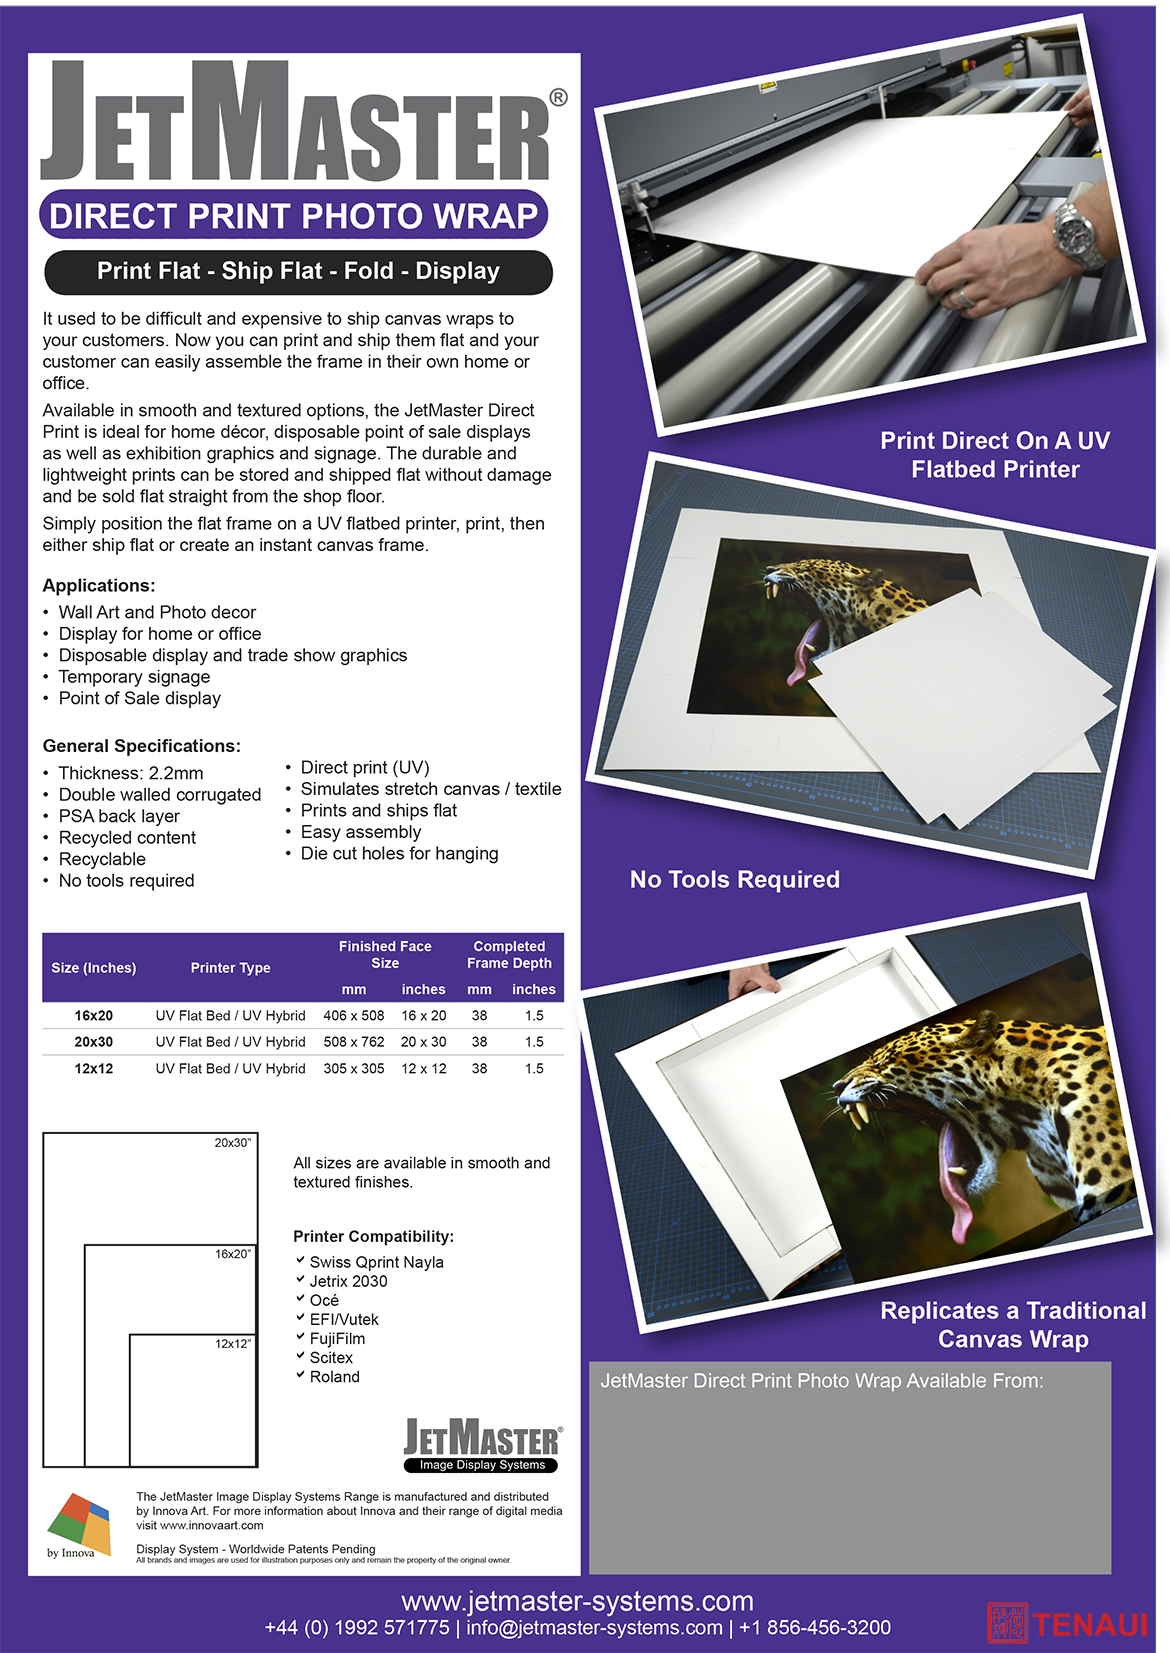 jetmaster-direct-print-photo-wrap-tenaui1